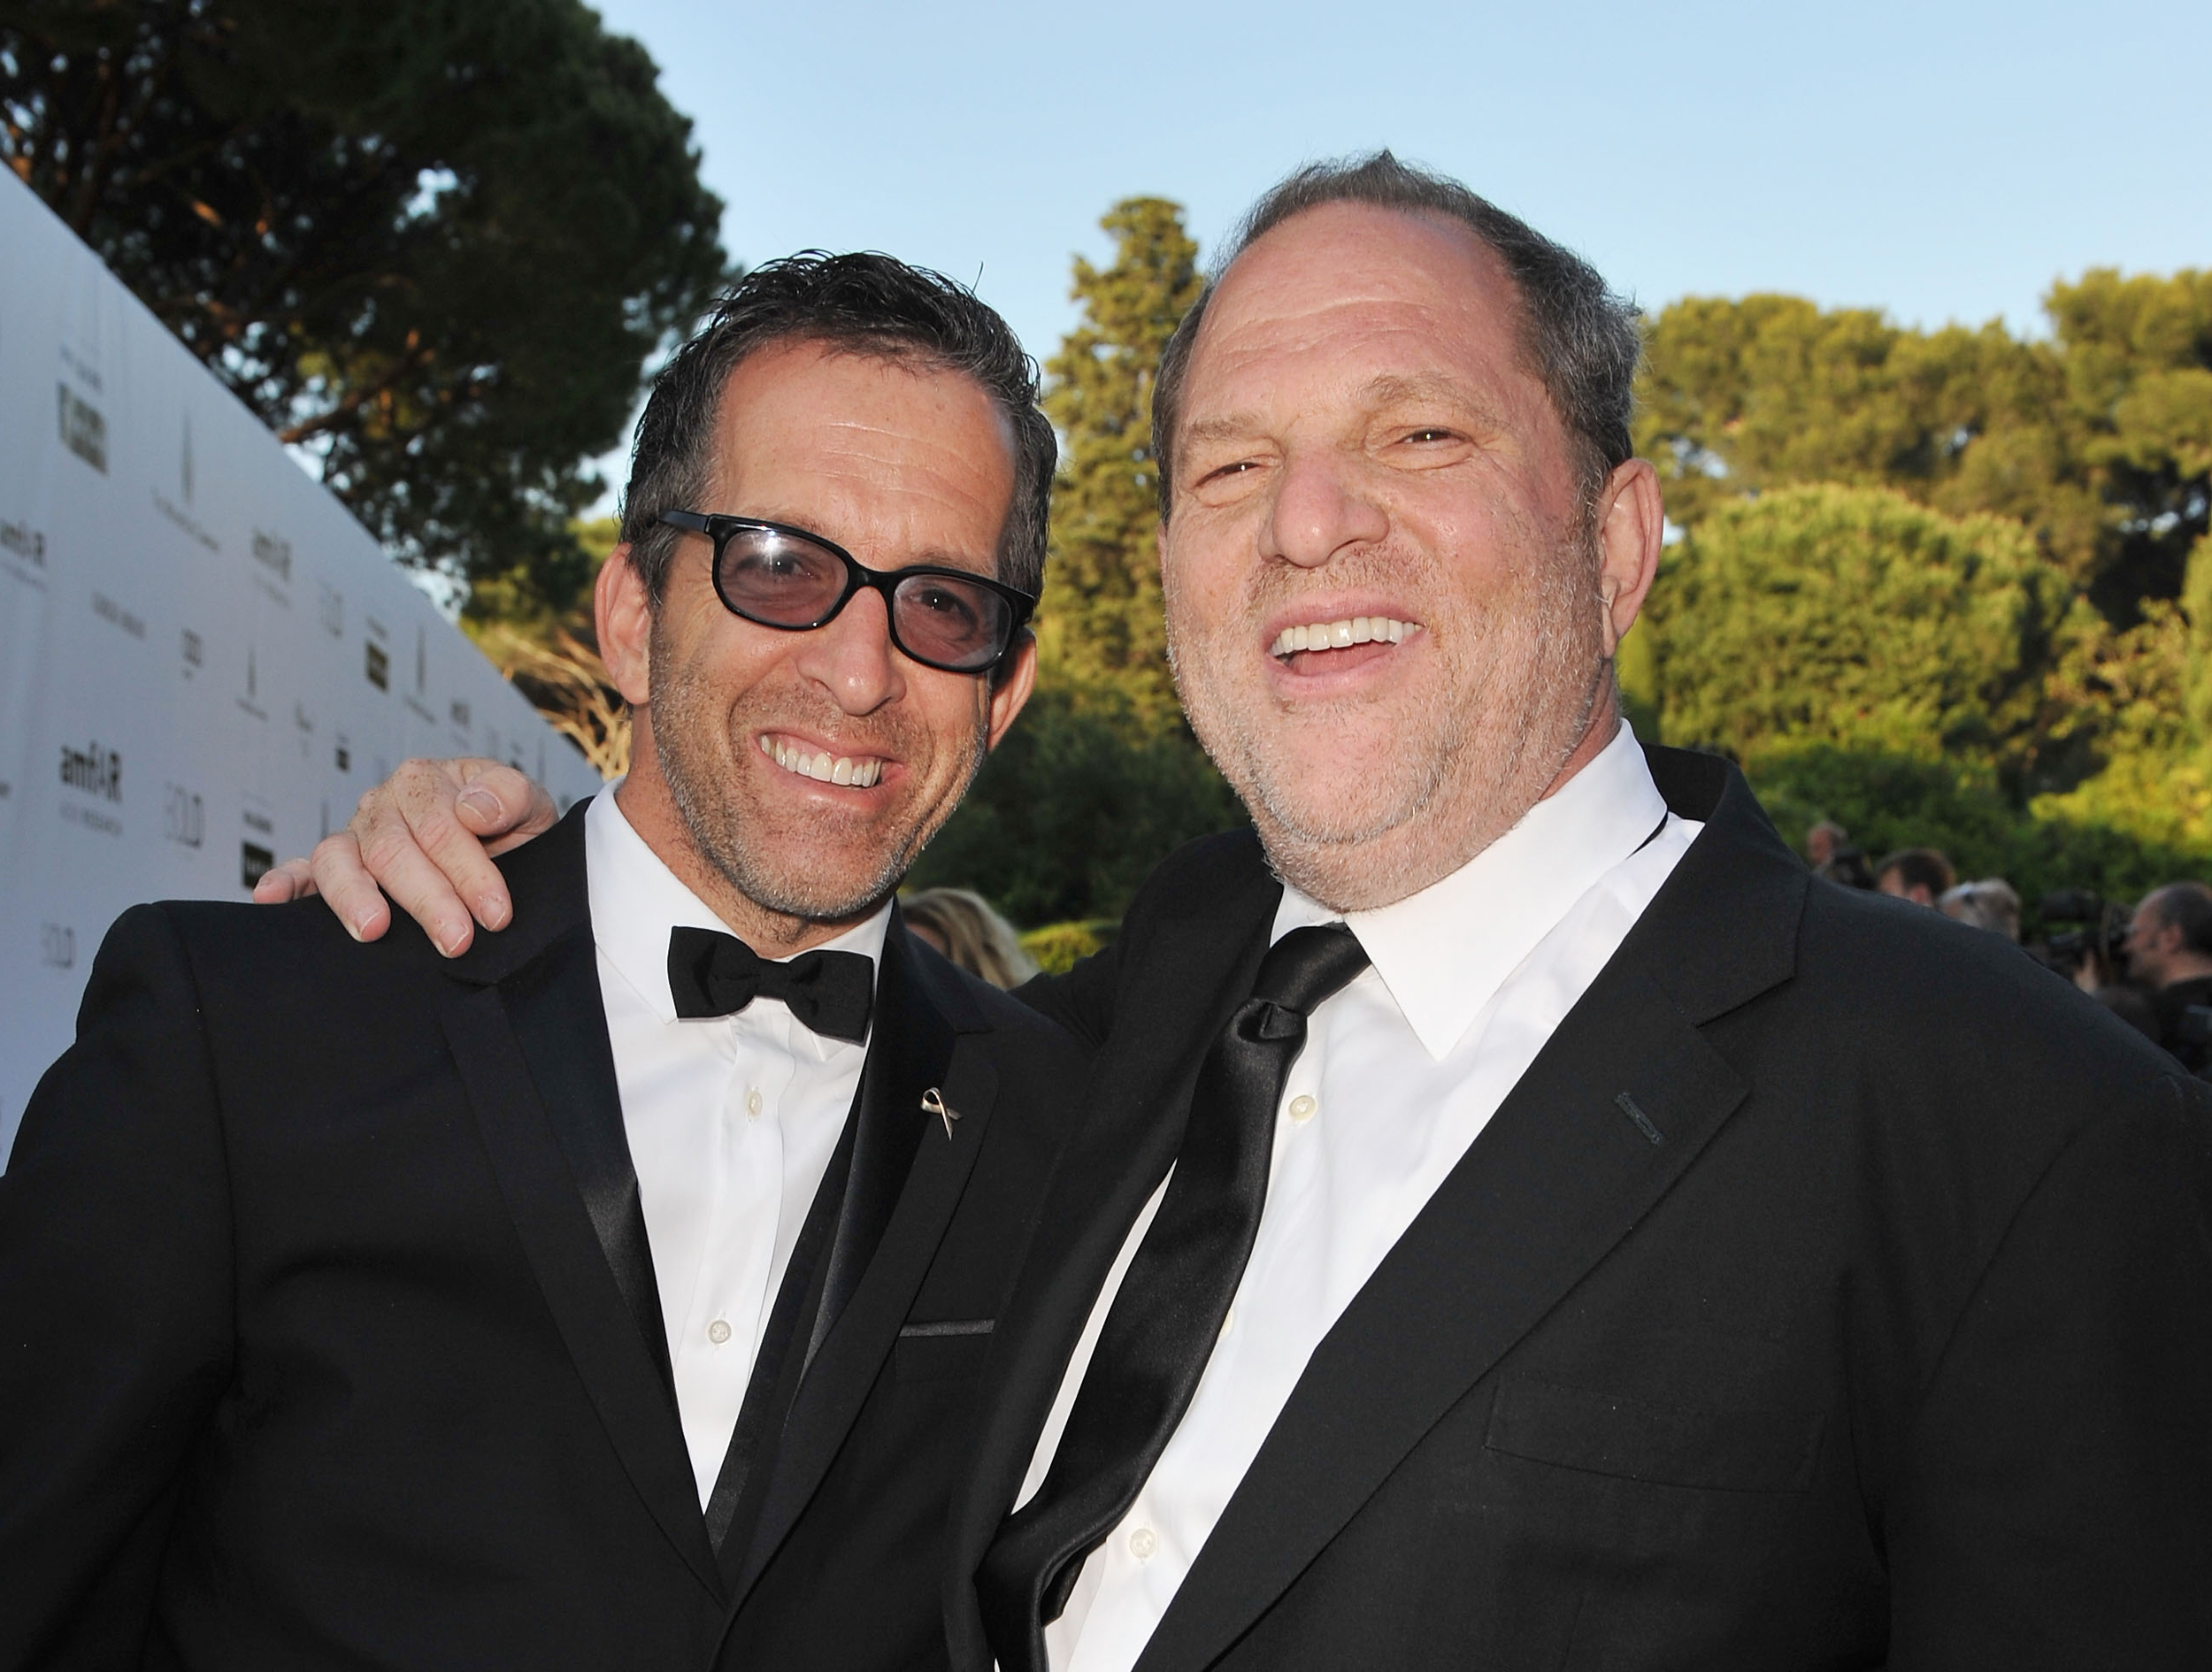 Image: Kenneth Cole, amfAR chairman, and Harvey Weinstein arrive at amfAR's Cinema Against AIDS 2010 benefit gala